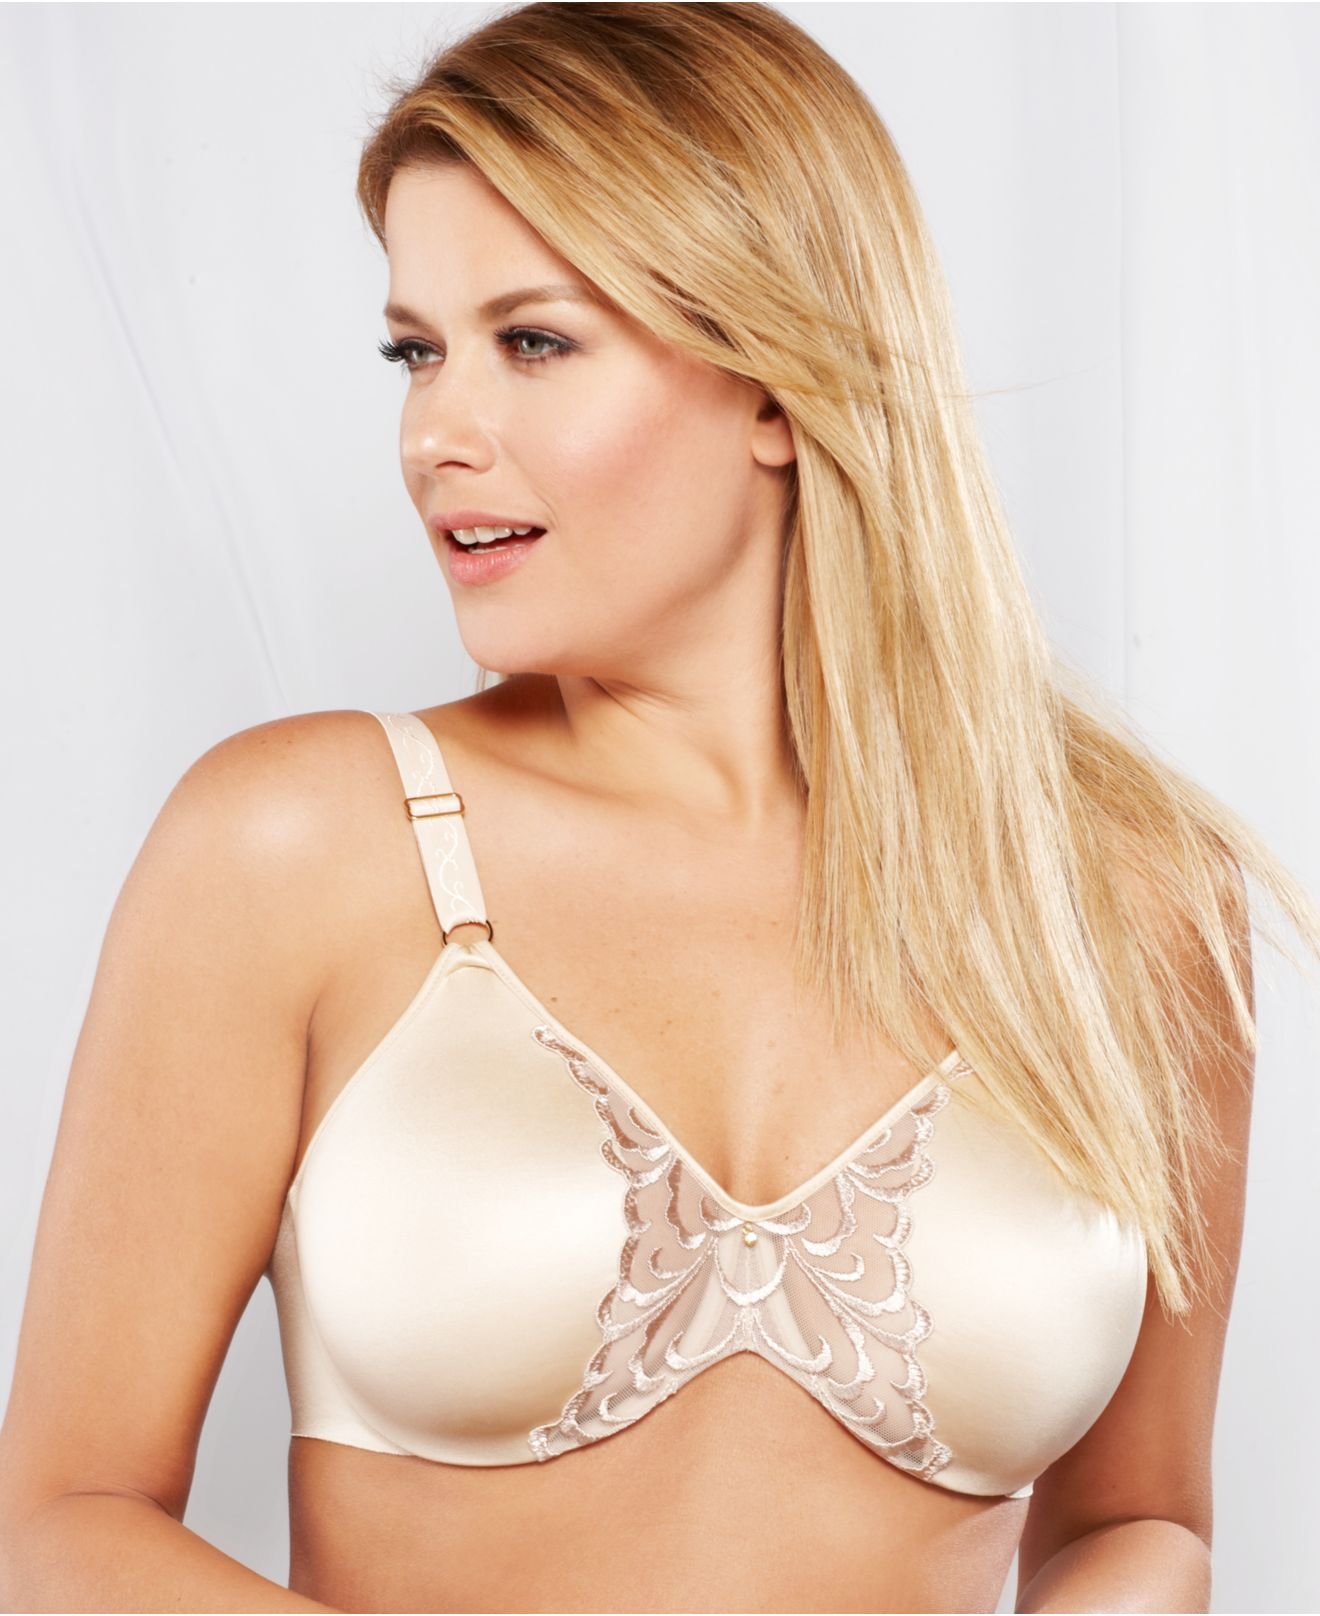 84123350c6 Lyst - Lilyette By Bali Magnificent Beauty Embellished Minimizer Bra ...